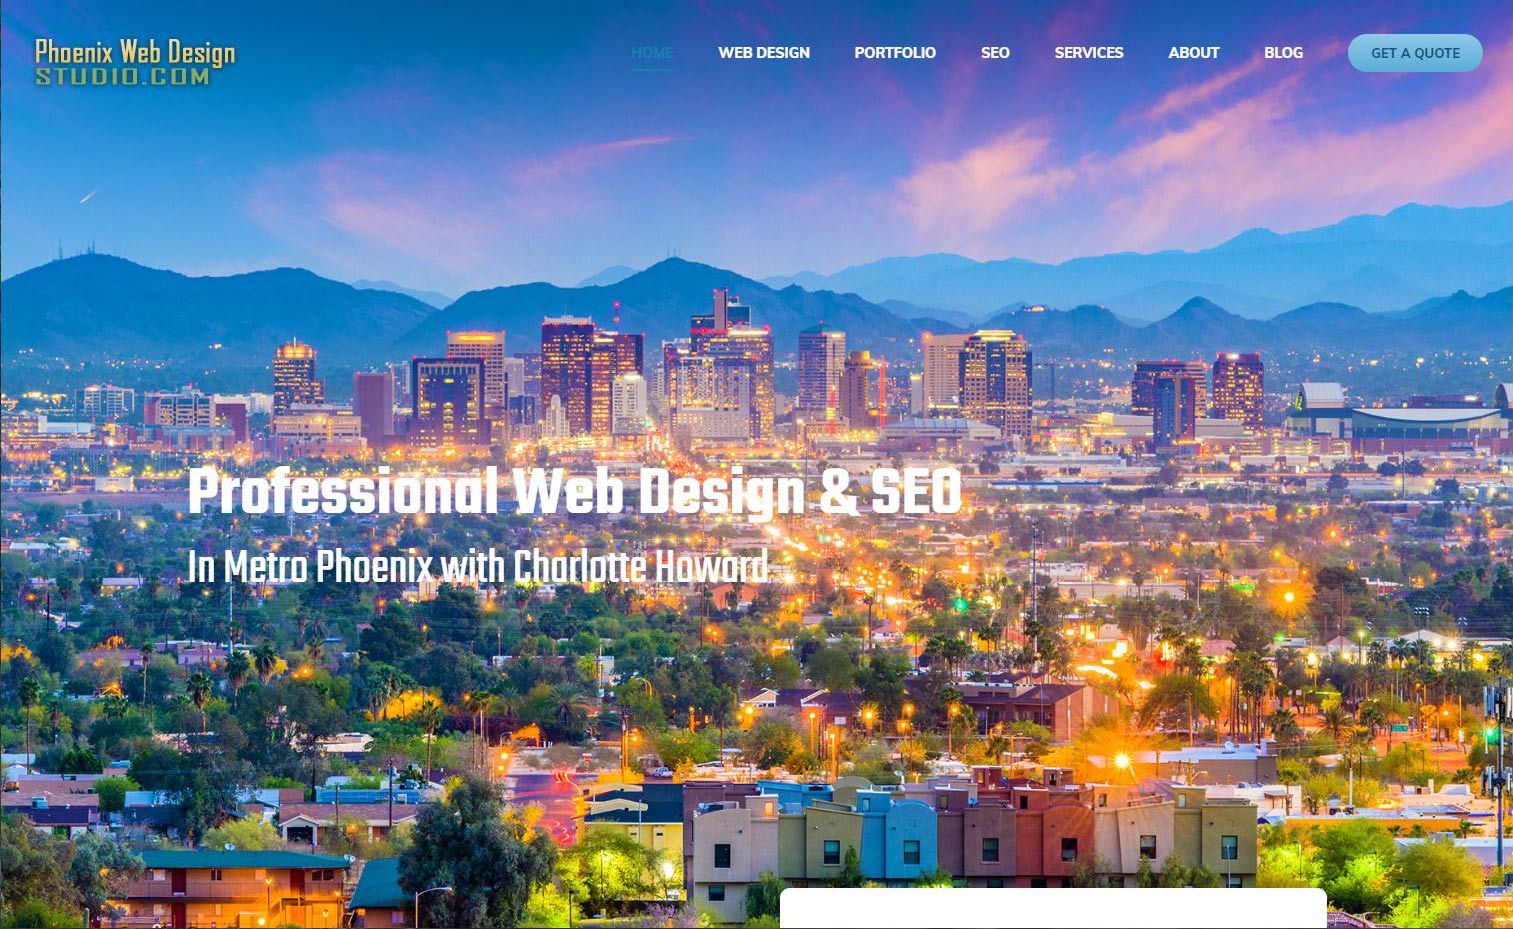 Phoenix Web Design and SEO